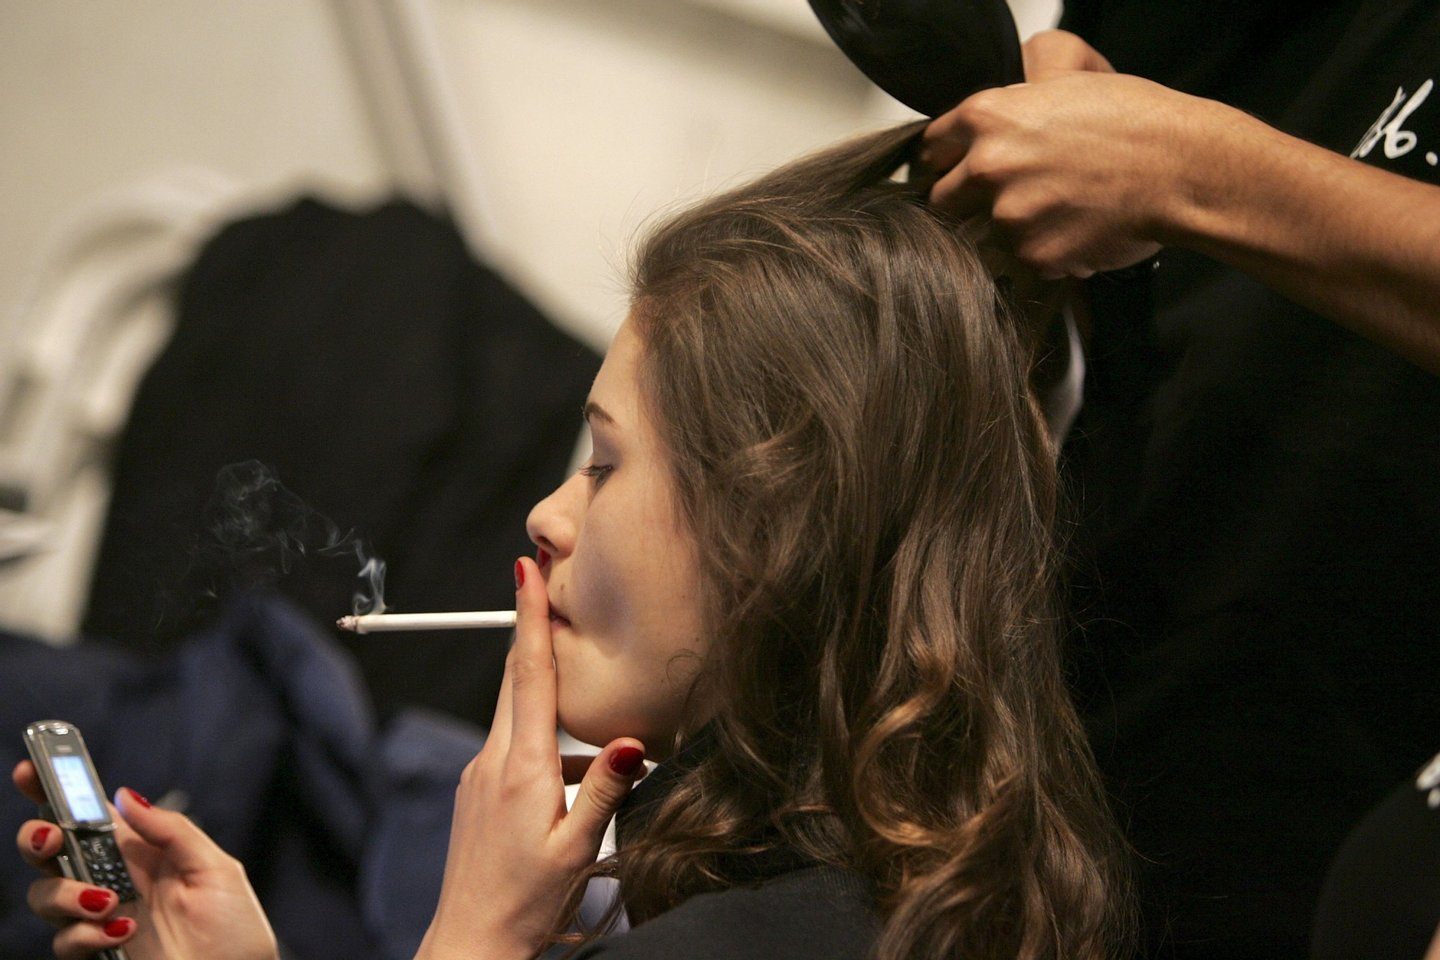 NEW YORK - FEBRUARY 07: A model smokes backstage at the Chaiken Fall 2006 fashion show during Olympus Fashion Week at Bryant Park February 6, 2006 in New York City. (Photo by Paul Hawthorne/Getty Images)